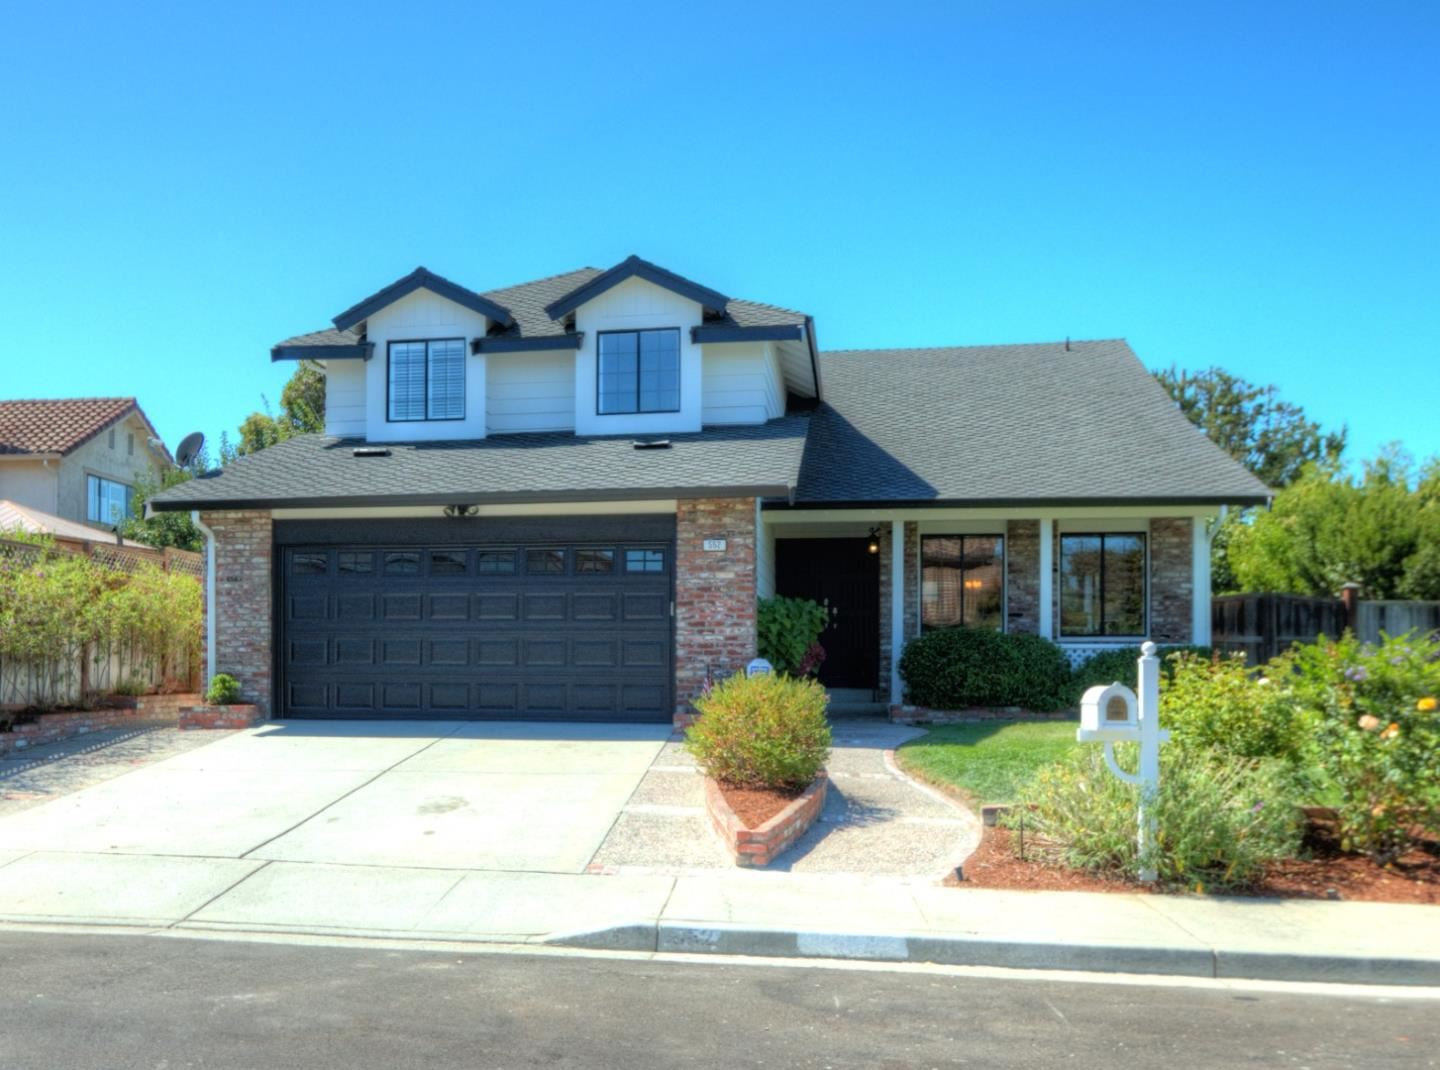 Photo for 552 Seagate Way Way, BELMONT, CA 94002 (MLS # ML81862411)